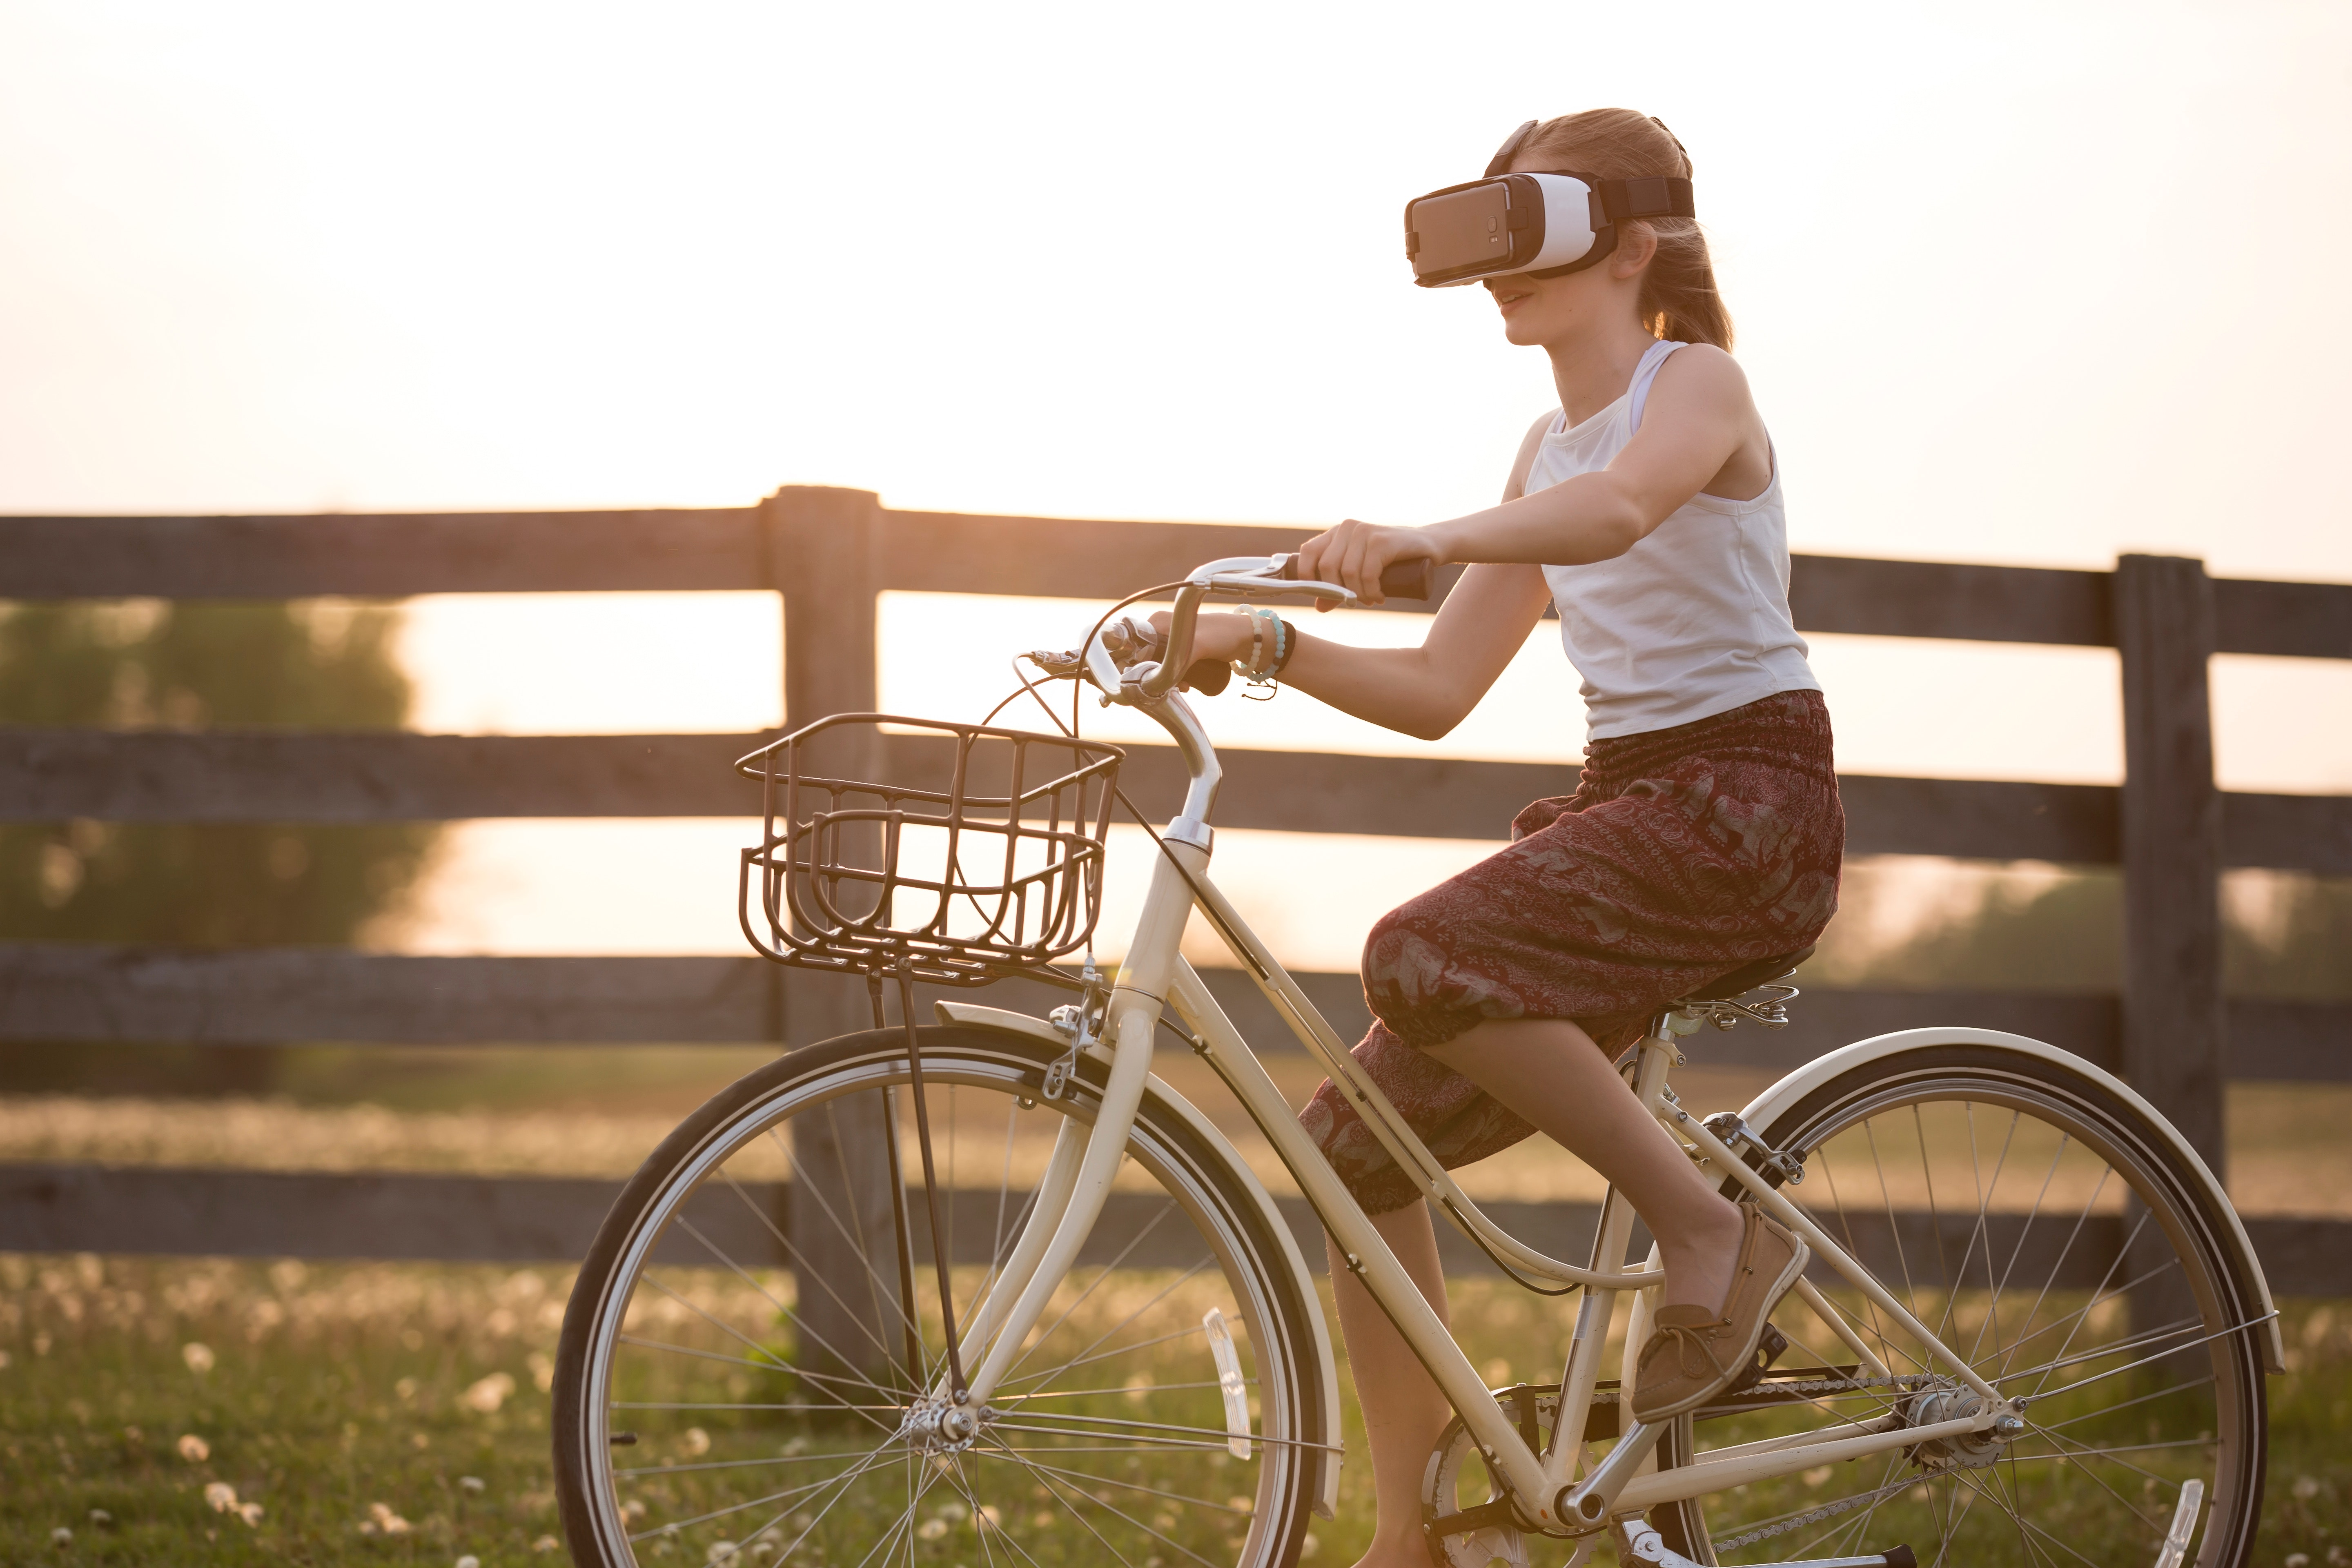 augmented-reality-bicycle-bike-166055